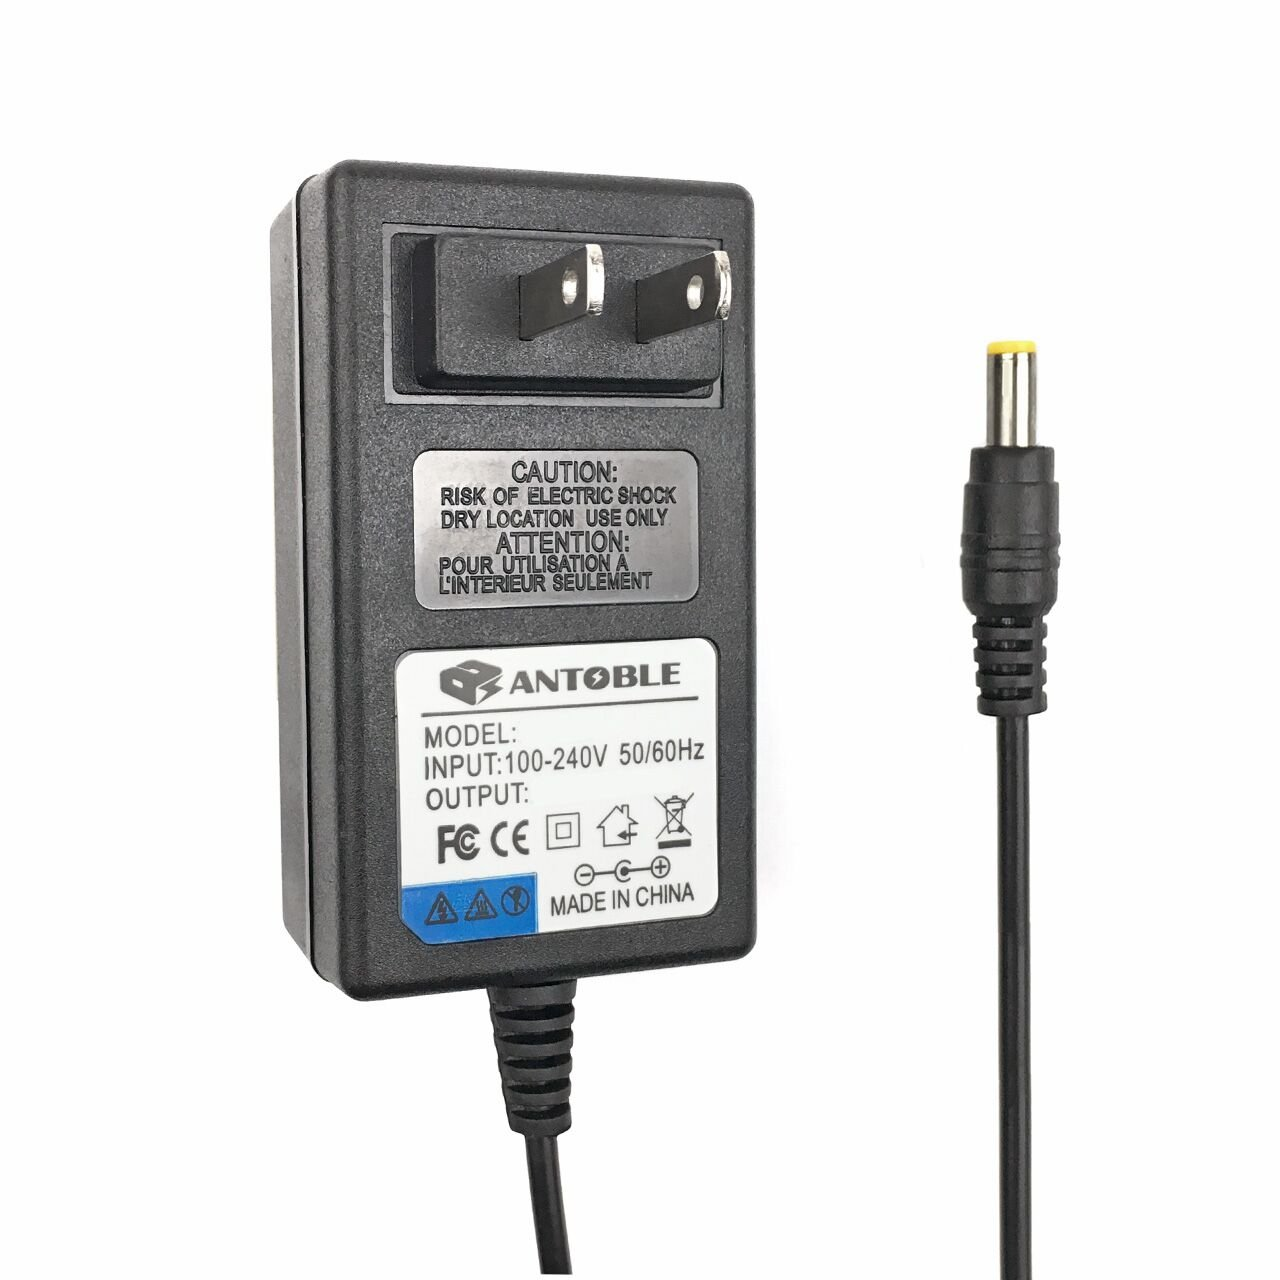 ((6.5 FEET CABLE)) AC Adapter for Booster PAC ESA22 ES2500KE/ES2500/ESA217 ES5000 ESP5500 J900 - SOLESA-22 For ES2500KE/ES2500 J850 J1000 J2000 Booster Pac Car (via Small Pin) Jump Starter by Eagleggo